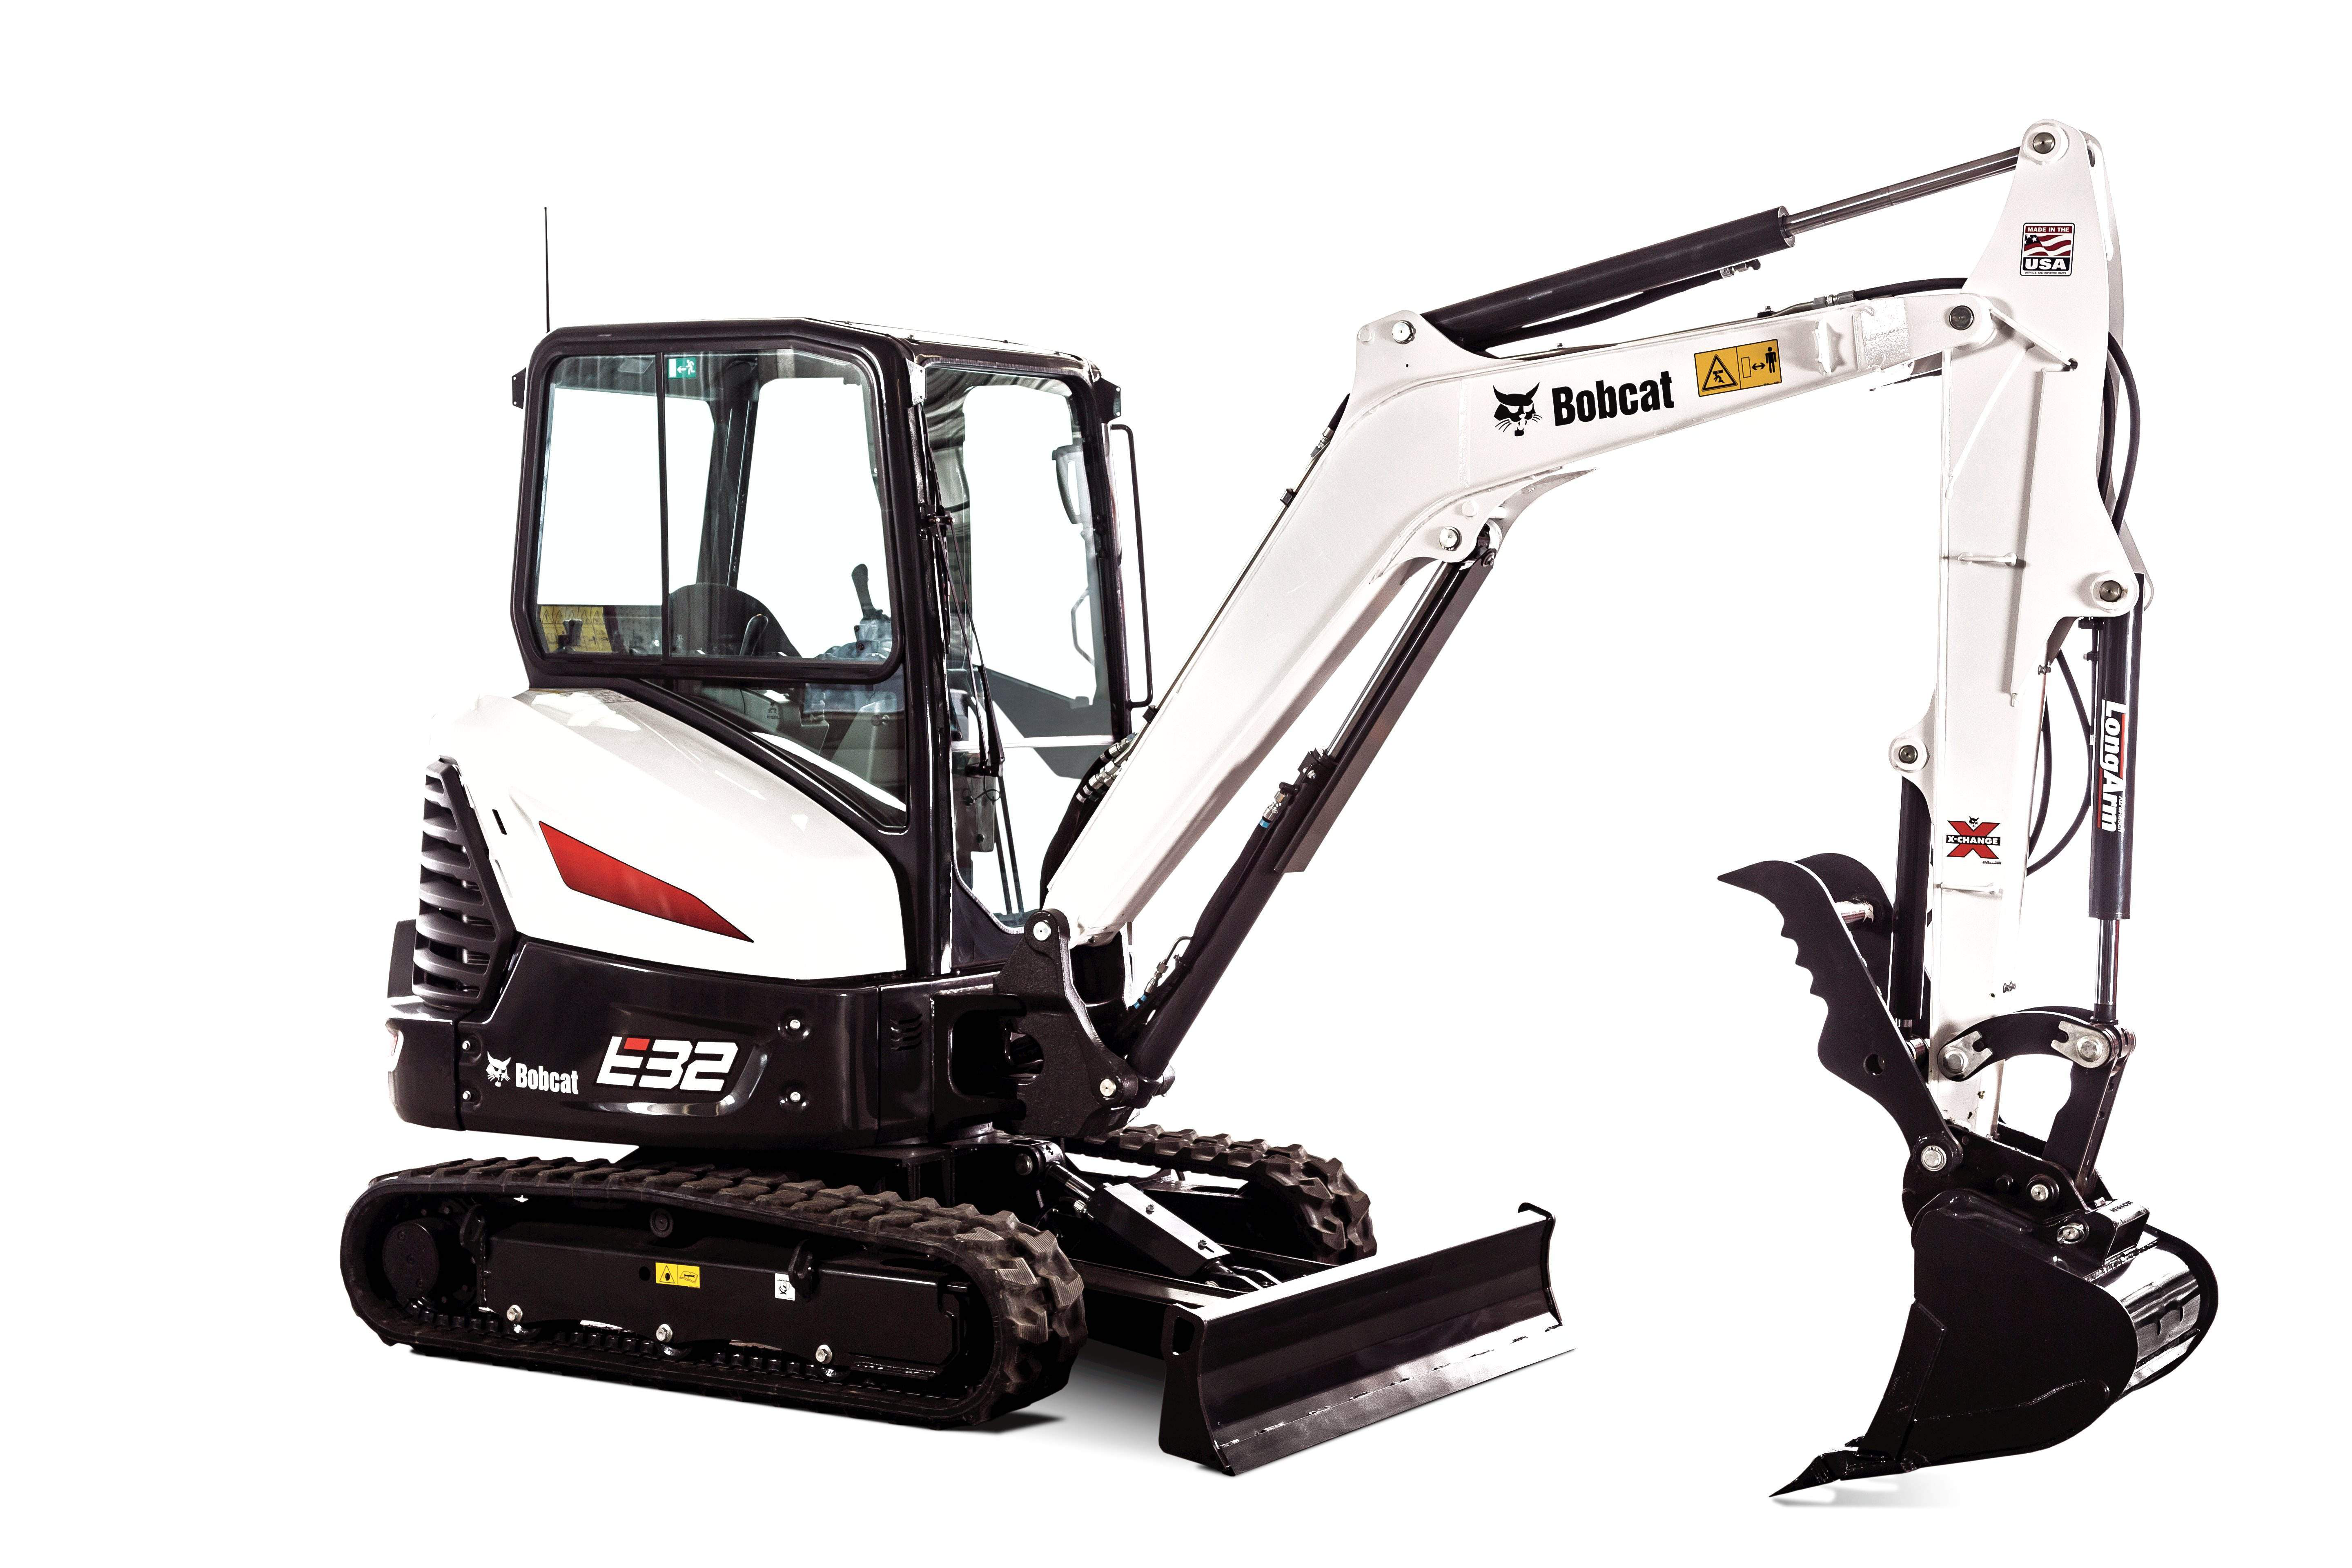 Bobcat intros redesigned grading and trenching buckets for